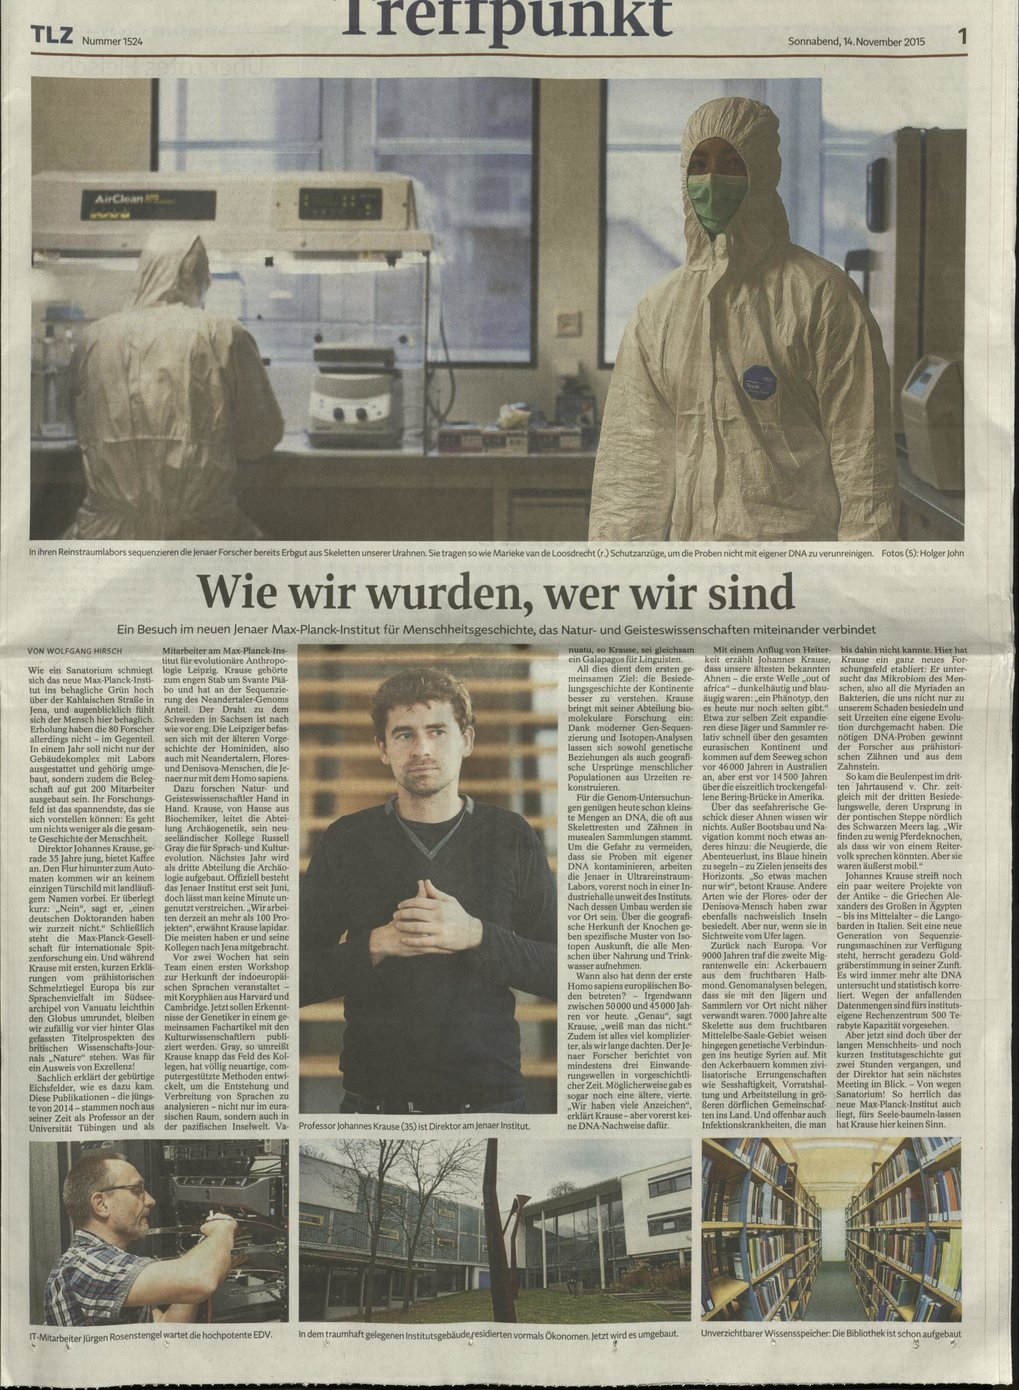 Wie wir wurden, wer wir sind (How we became, who we are)Wolfgang Hirsch, science writer at Thüringer Landeszeitung introduces MPI for the Science of Human History [in German].Online version available at: http://www.tlz.de/web/zgt/leben/detail/-/specific/Das-neue-Max-Planck-Institut-in-Jena-Wie-wir-wurden-wer-wir-sind-716113889